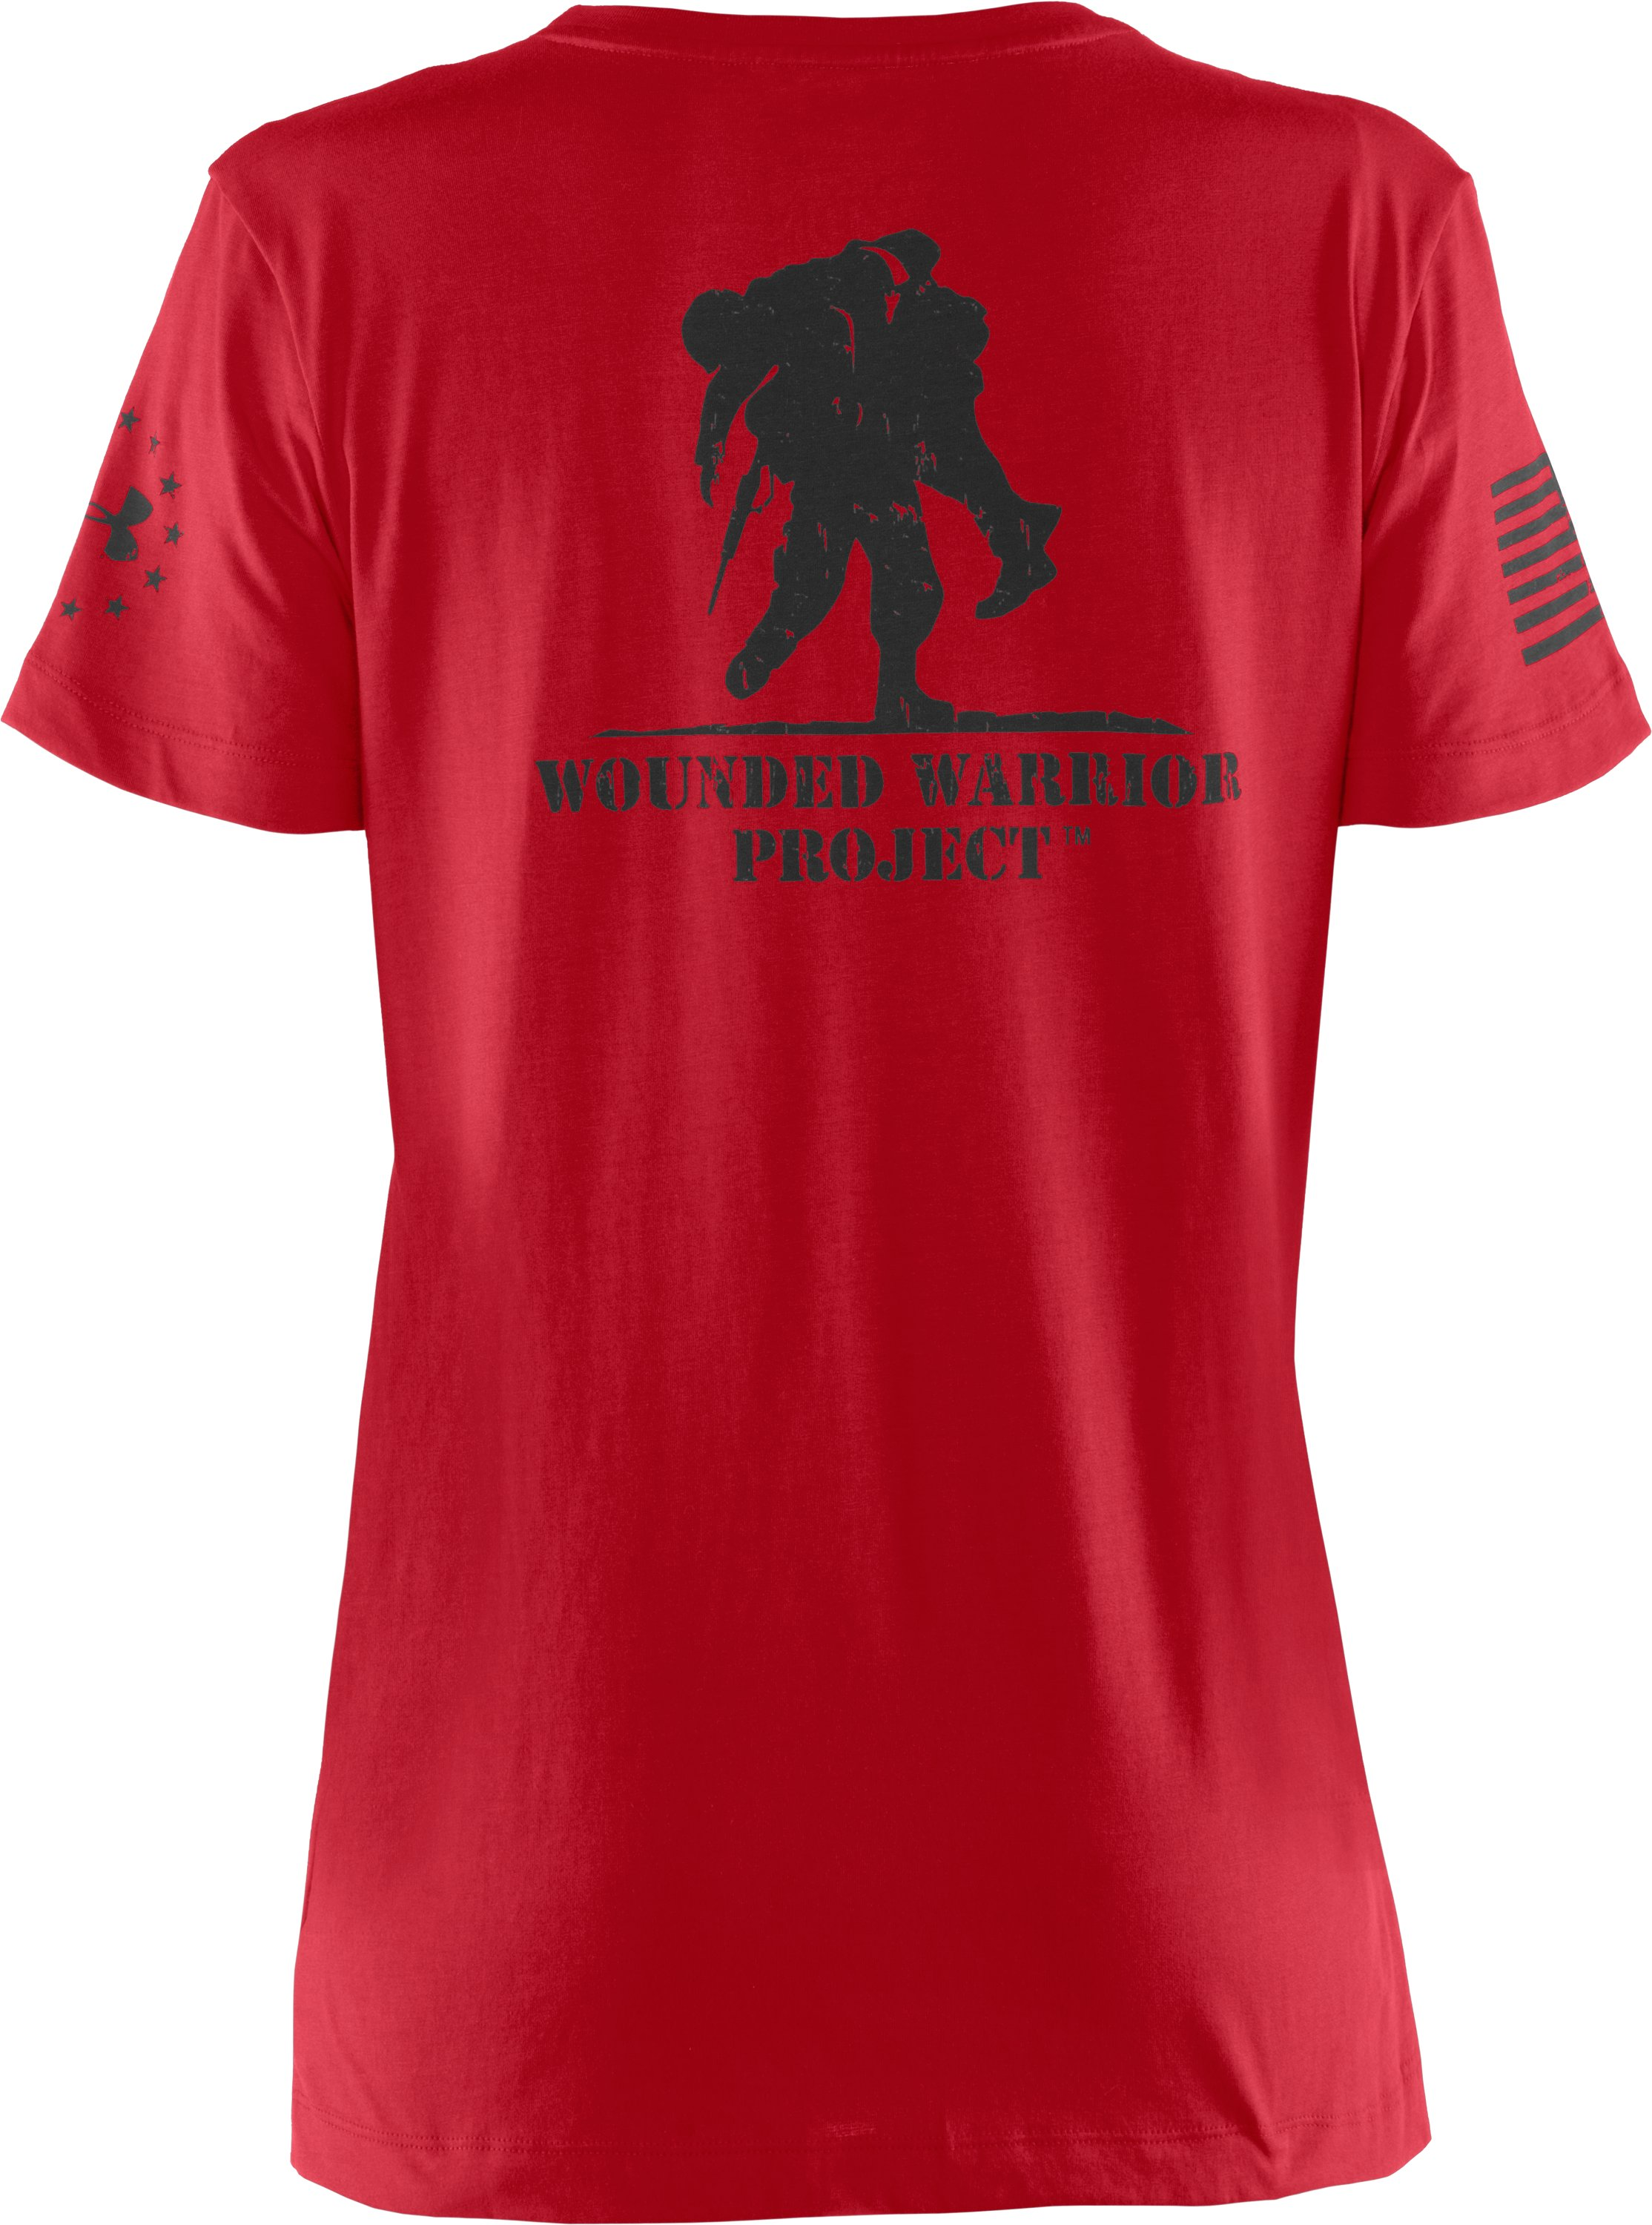 Women's WWP Short Sleeve T-Shirt, Red